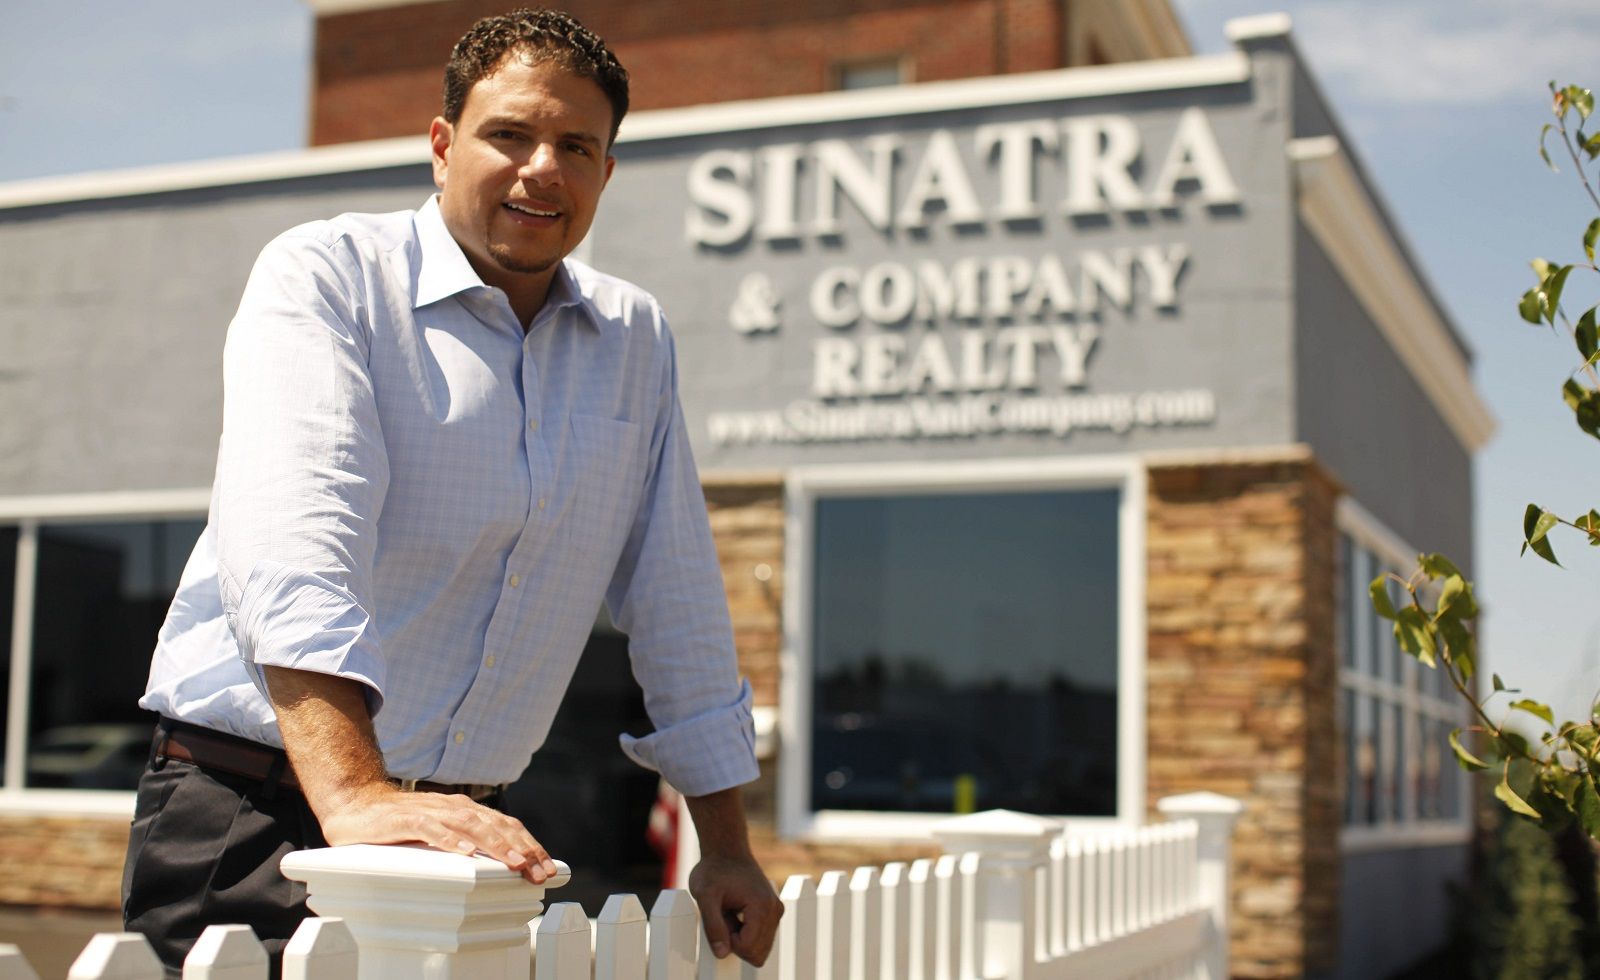 Developer Nick Sinatra is under fire for not paying property taxes on some properties in Buffalo and its suburbs,. He says he's challenging the assessments. (Derek Gee/News file photo)